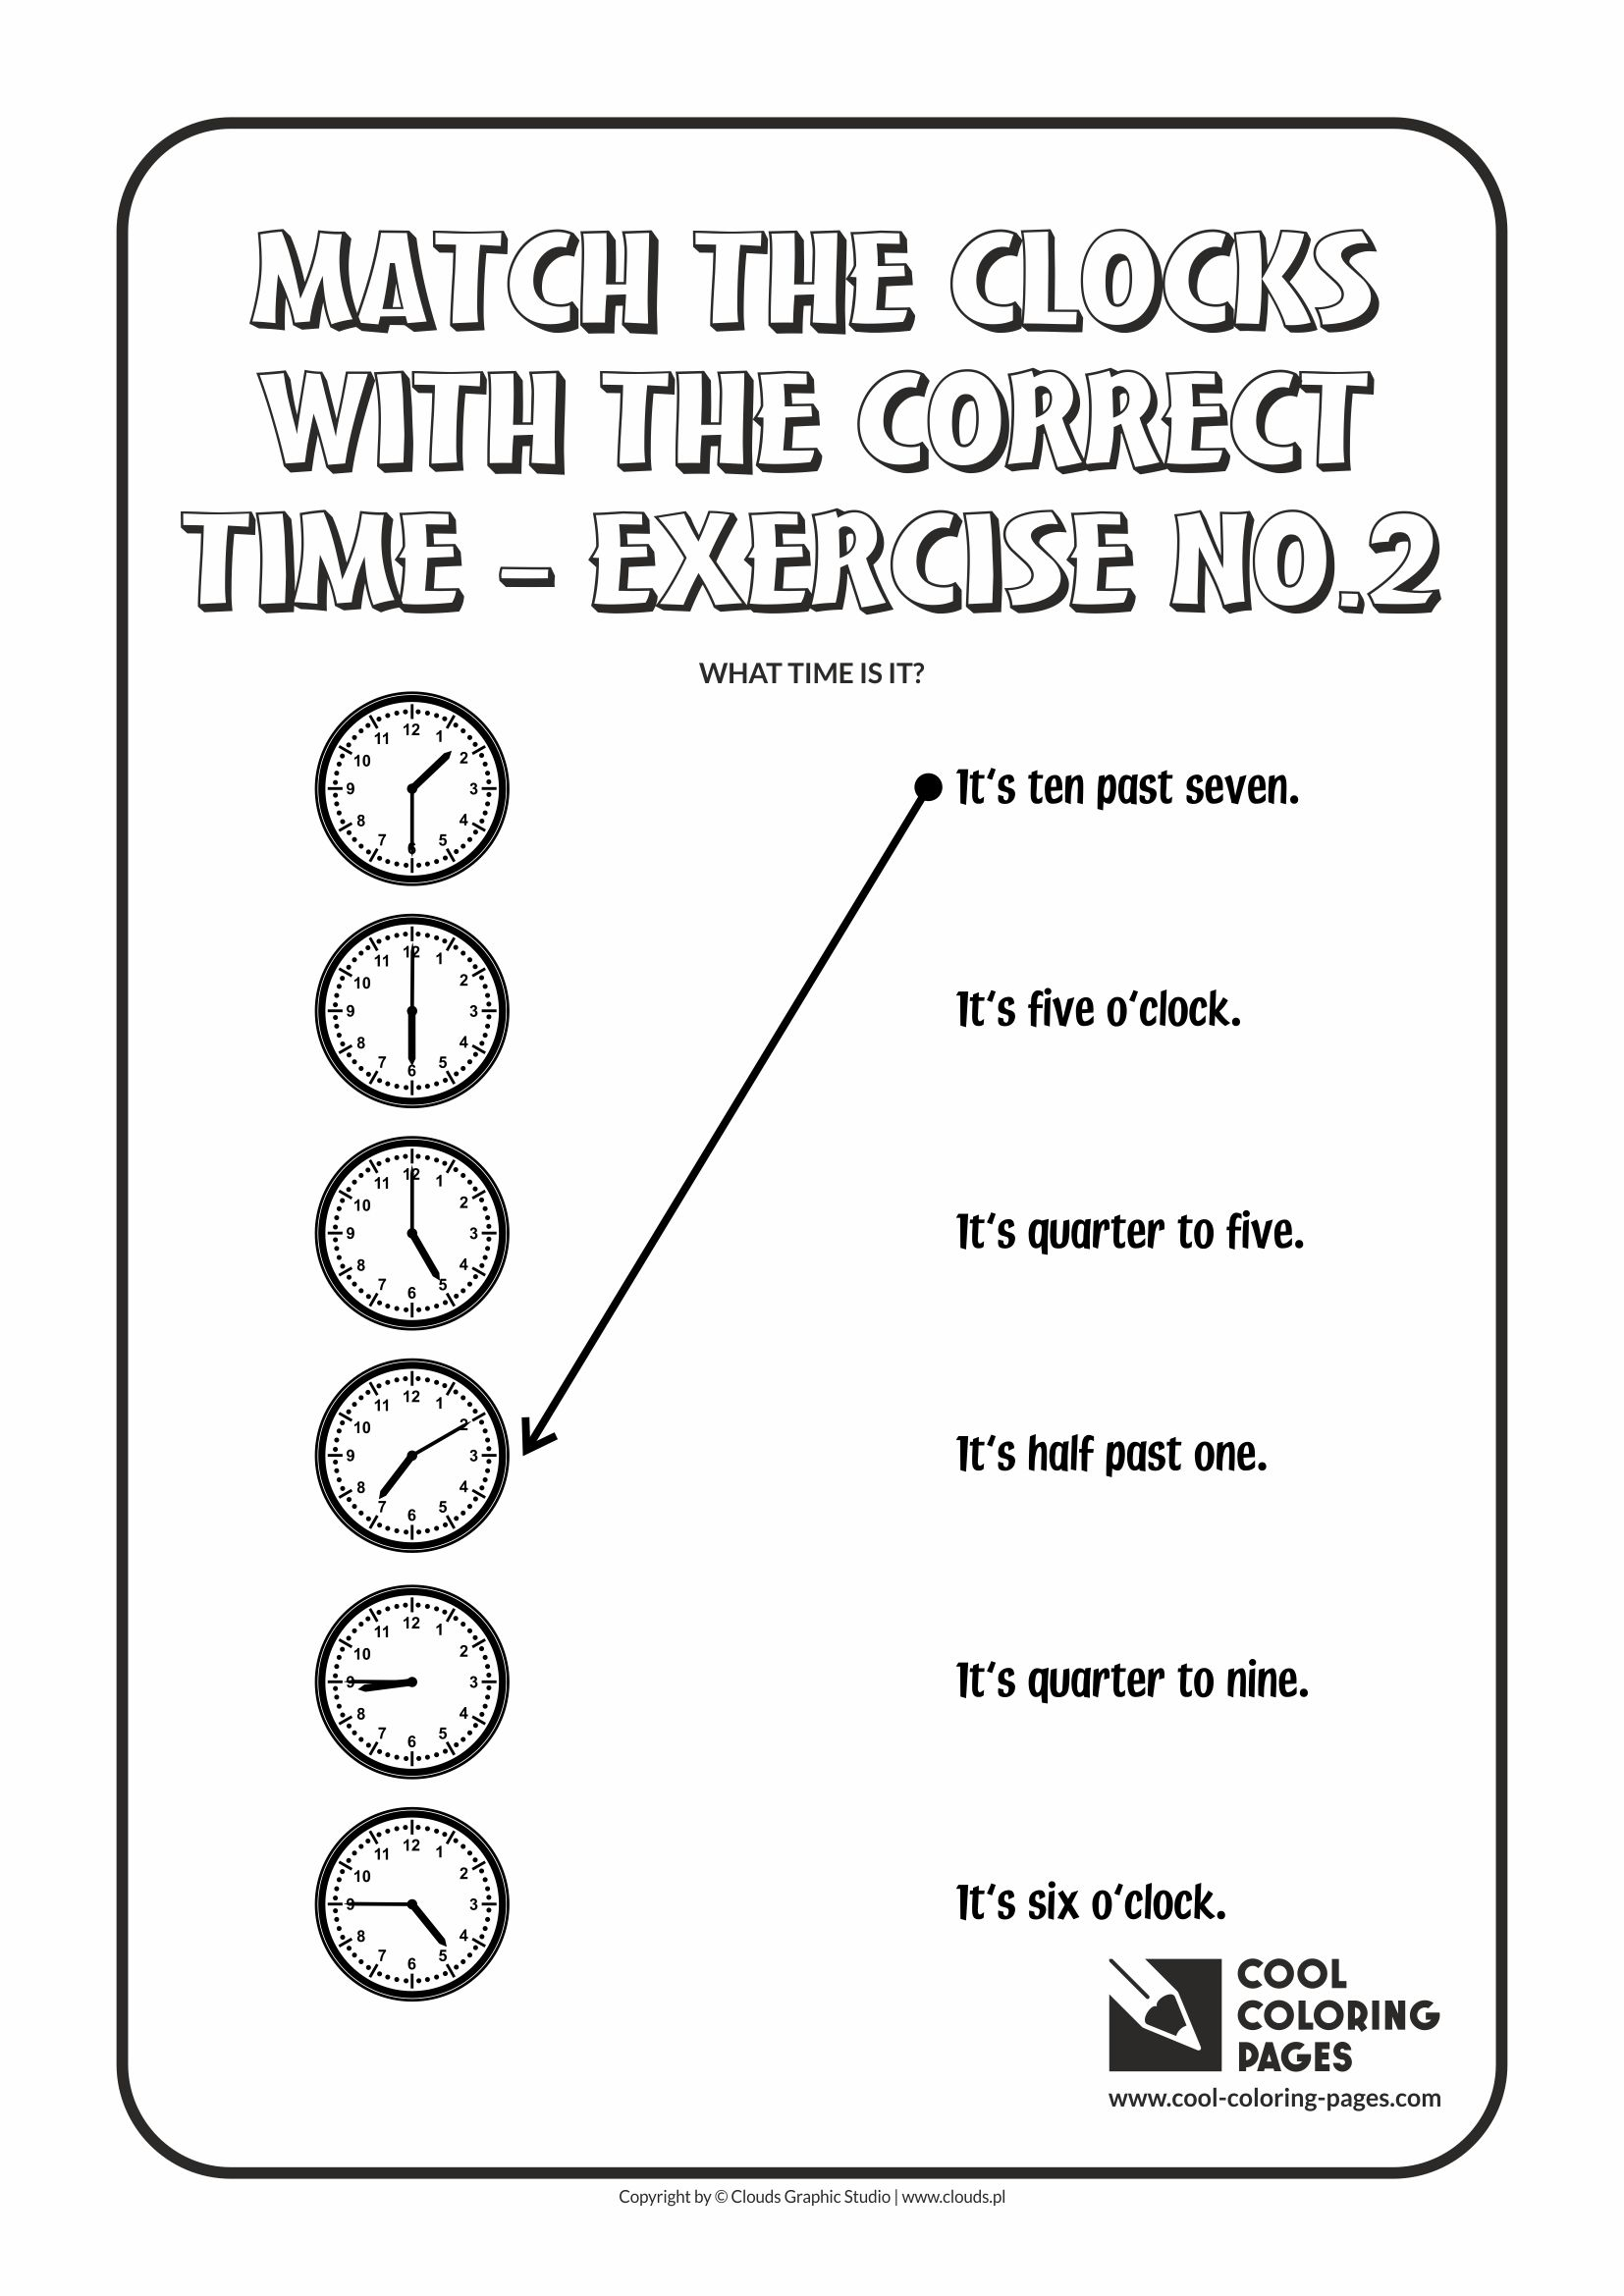 Cool Coloring Pages Match The Clocks With The Correct Time